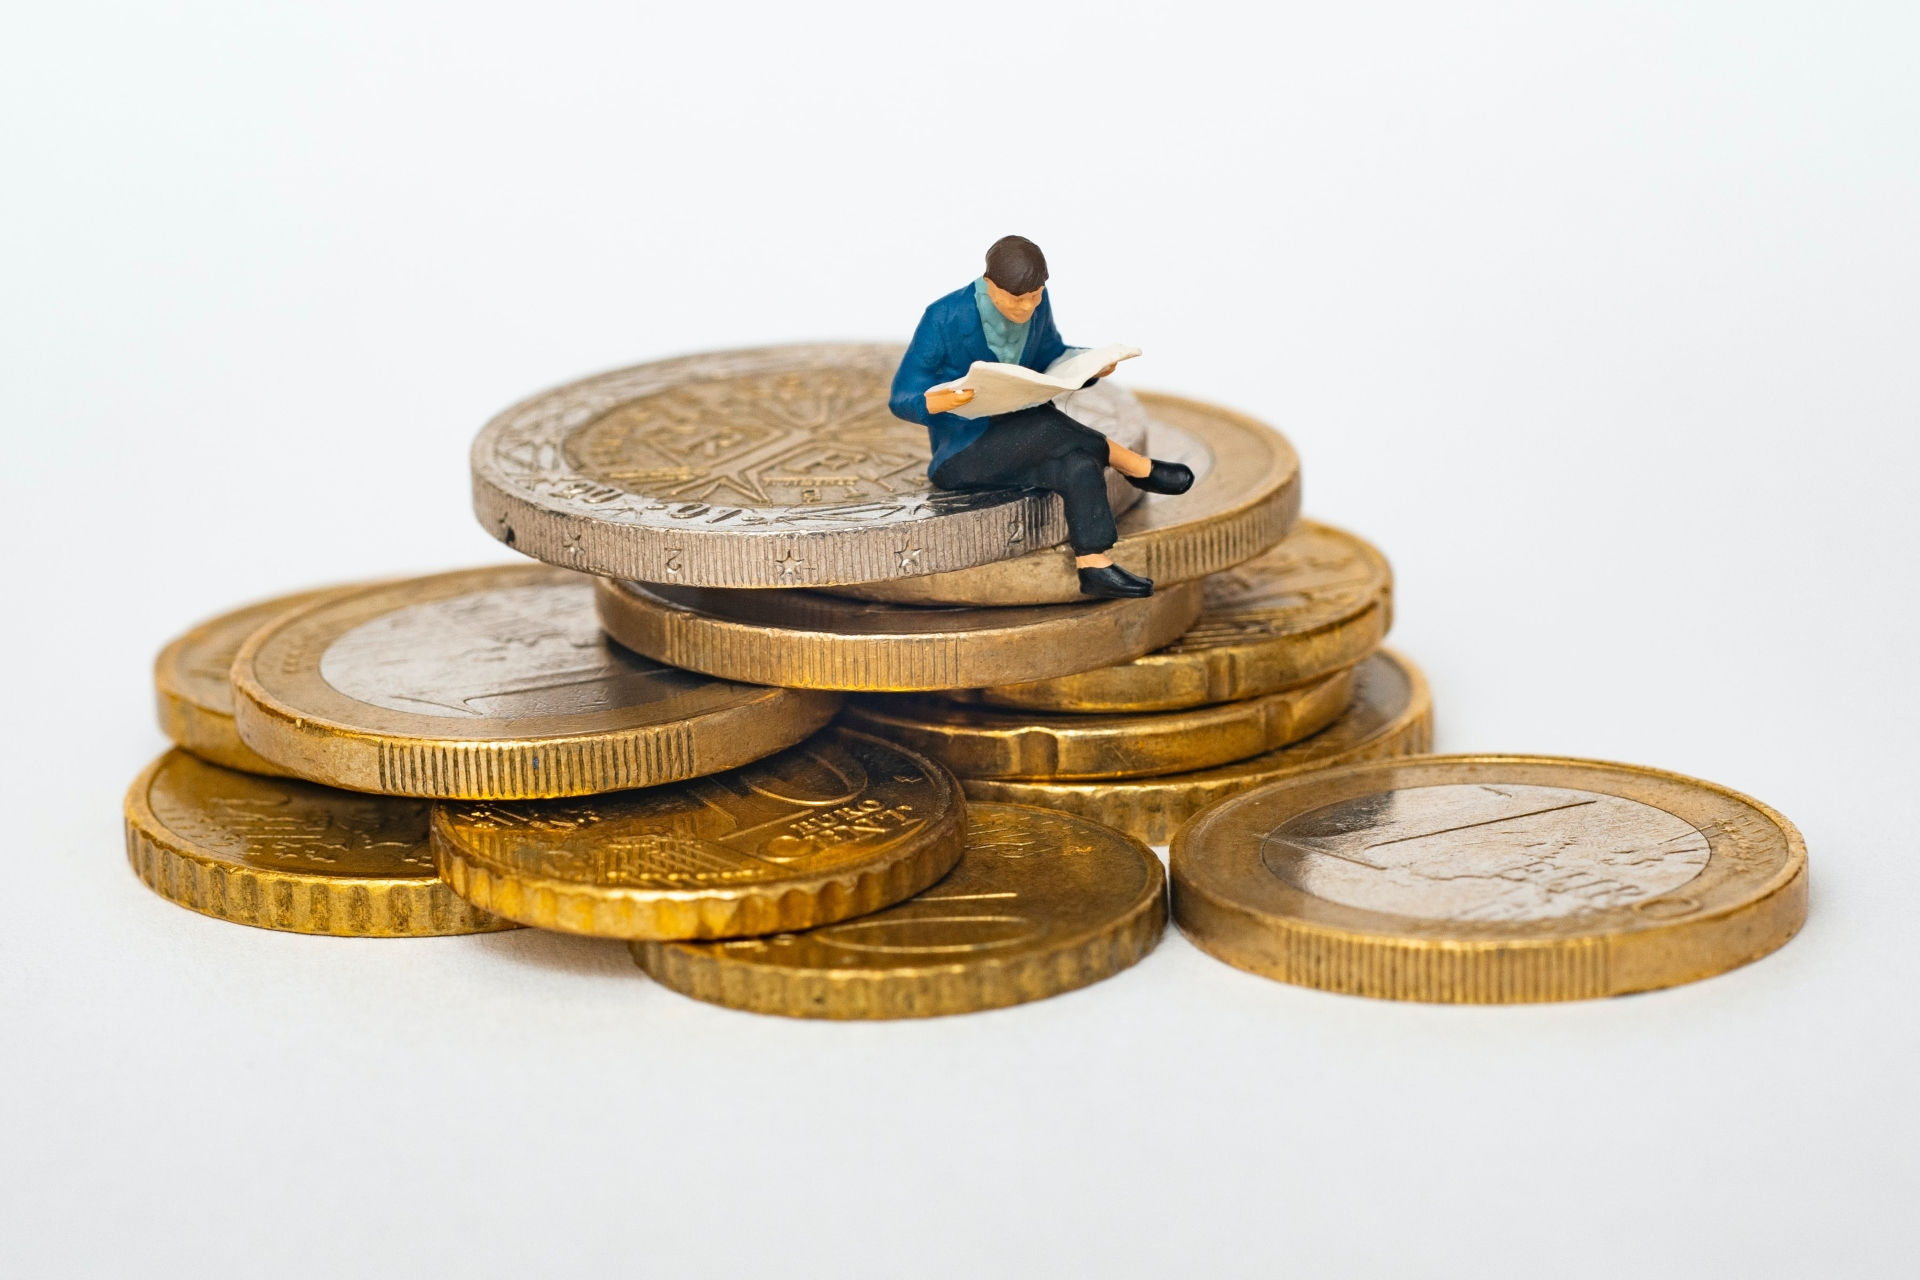 Blogs on how to become a venture capitalist